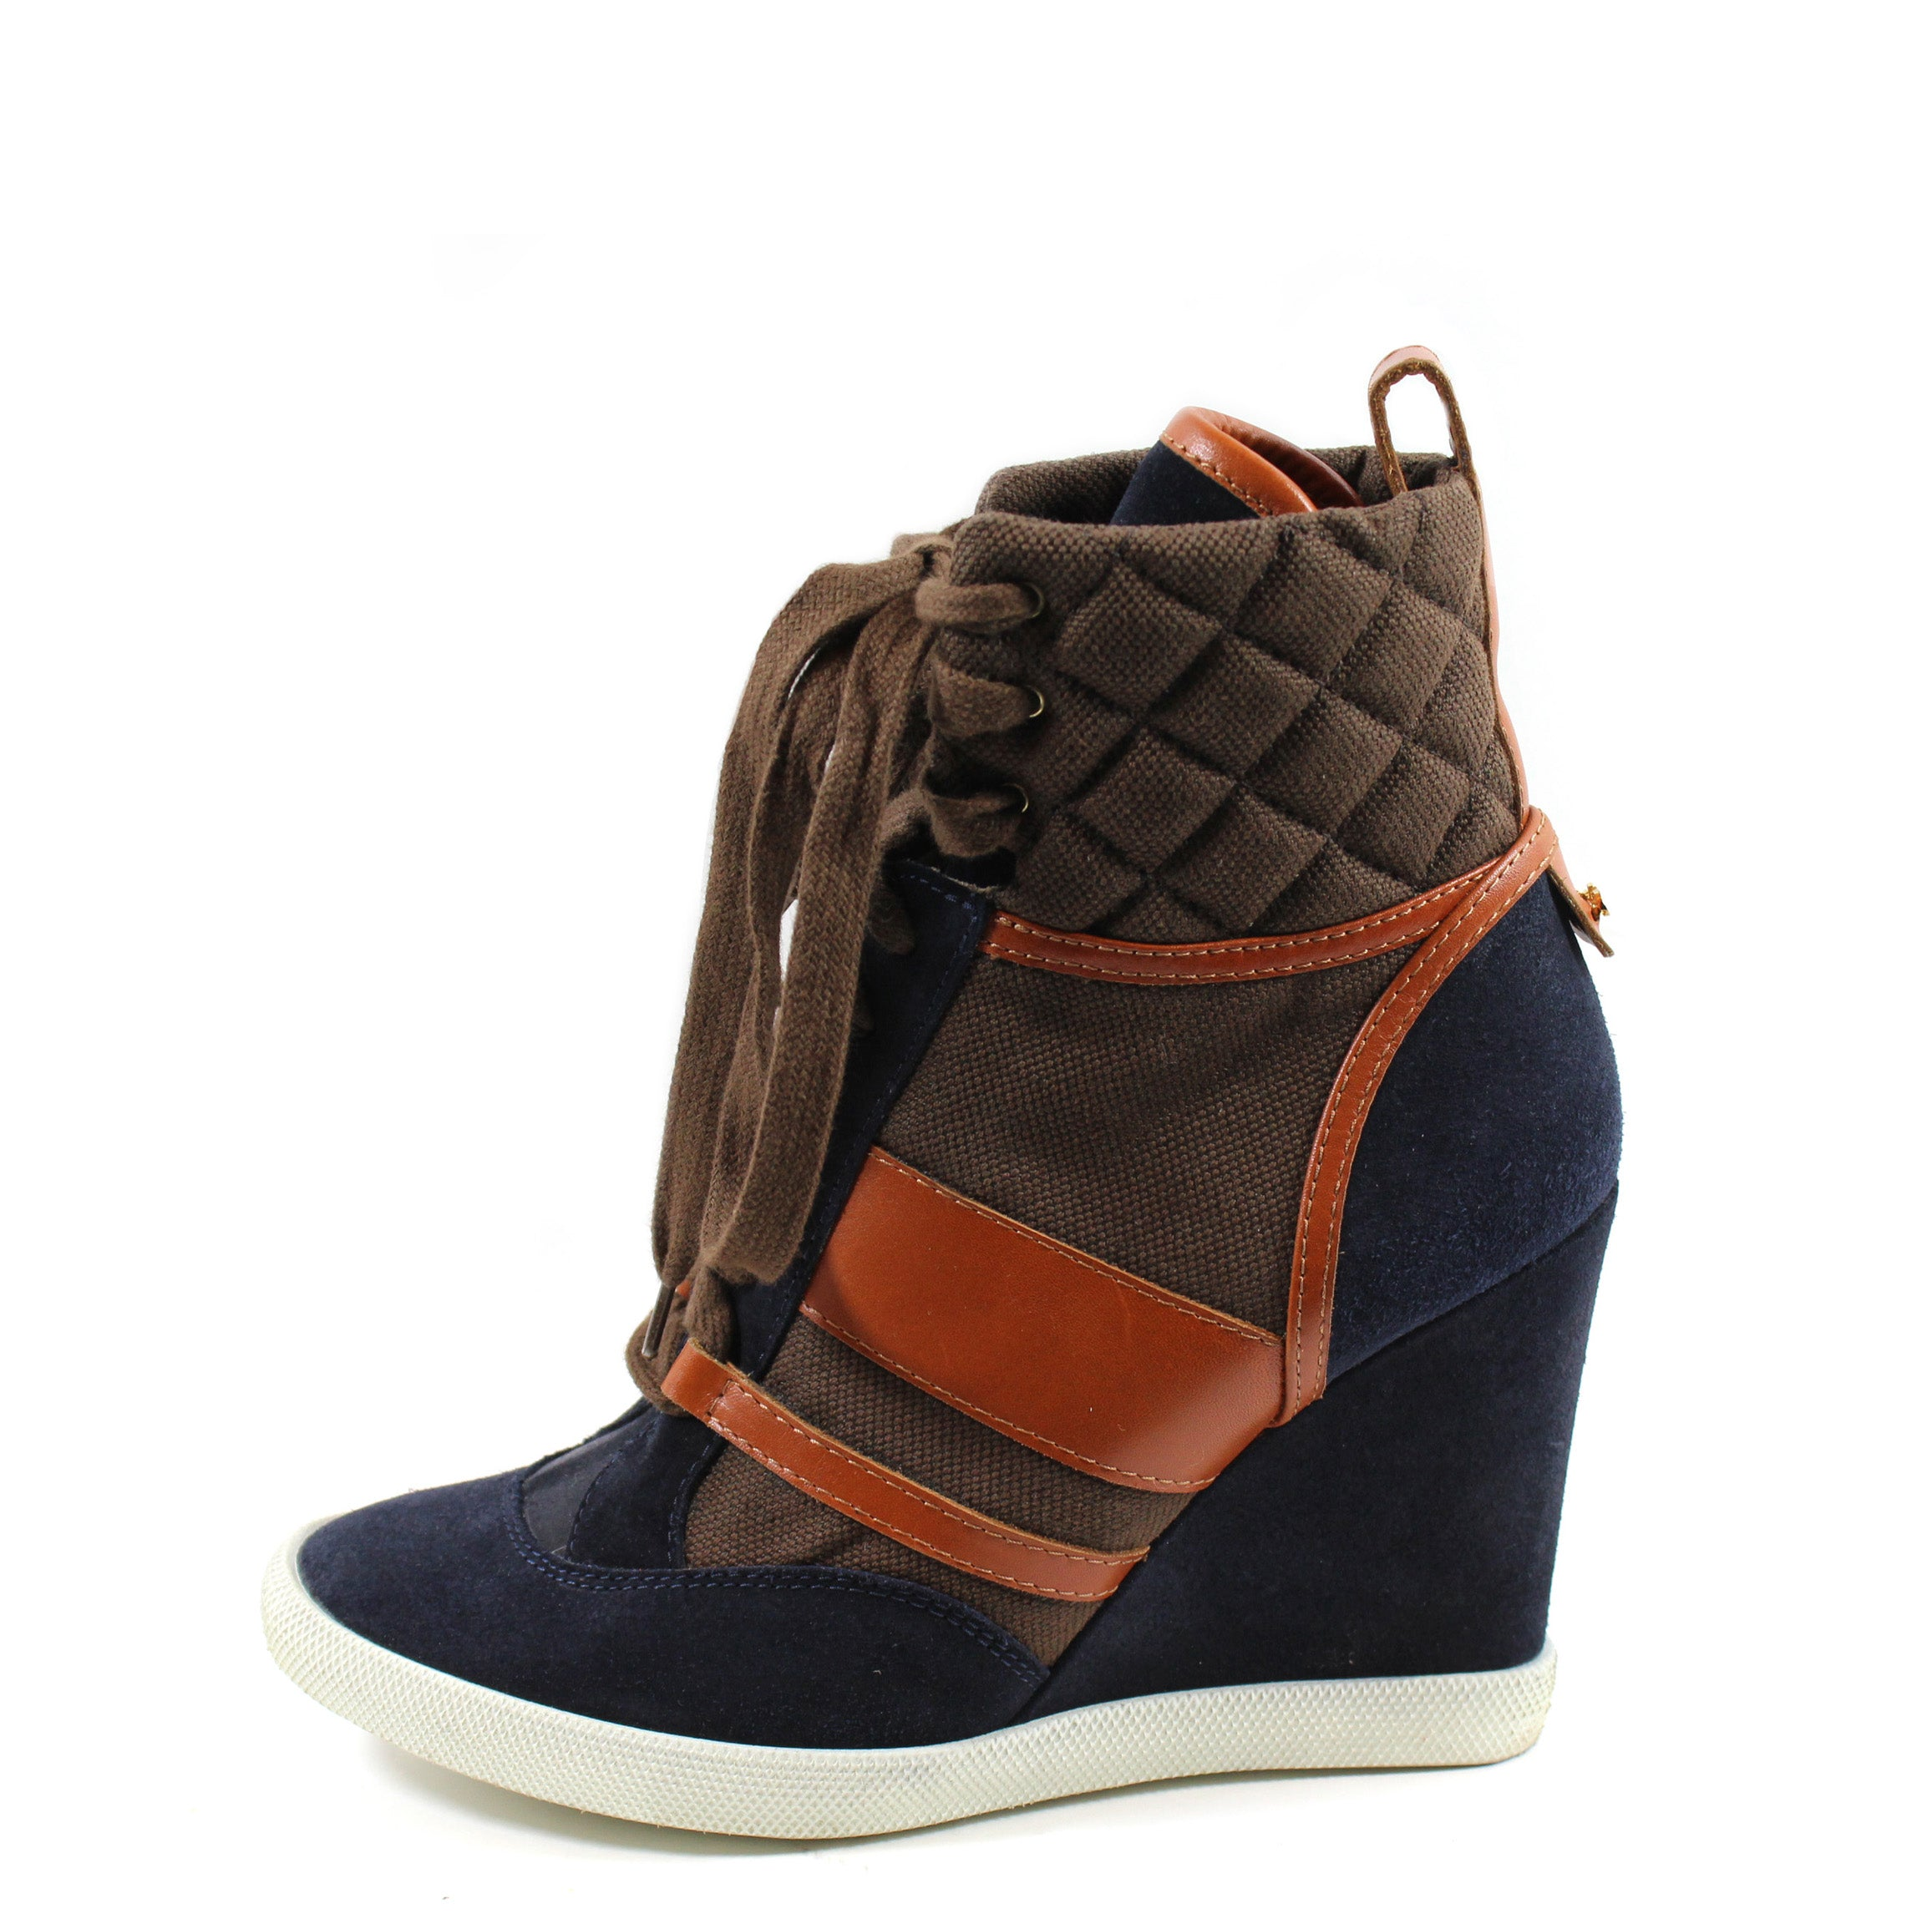 7a07af3ebe6 Chloé  Kasia  Navy Brown Wedge Sneakers (Size 39) – Encore Consignment